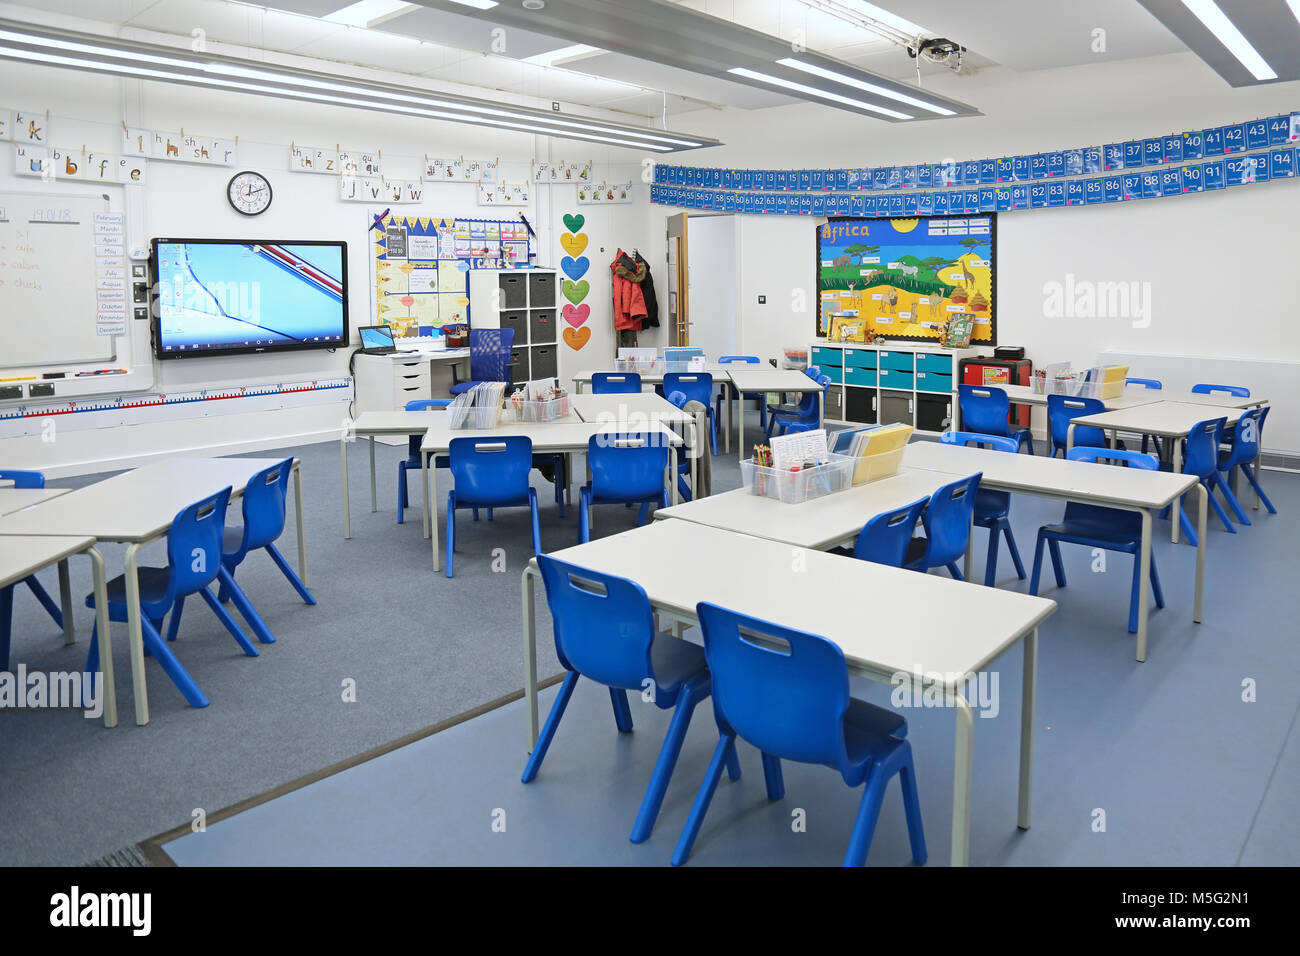 Charmant Classroom In A Newly Built London Primary School. Shows Desks Arranged Into  Groups.